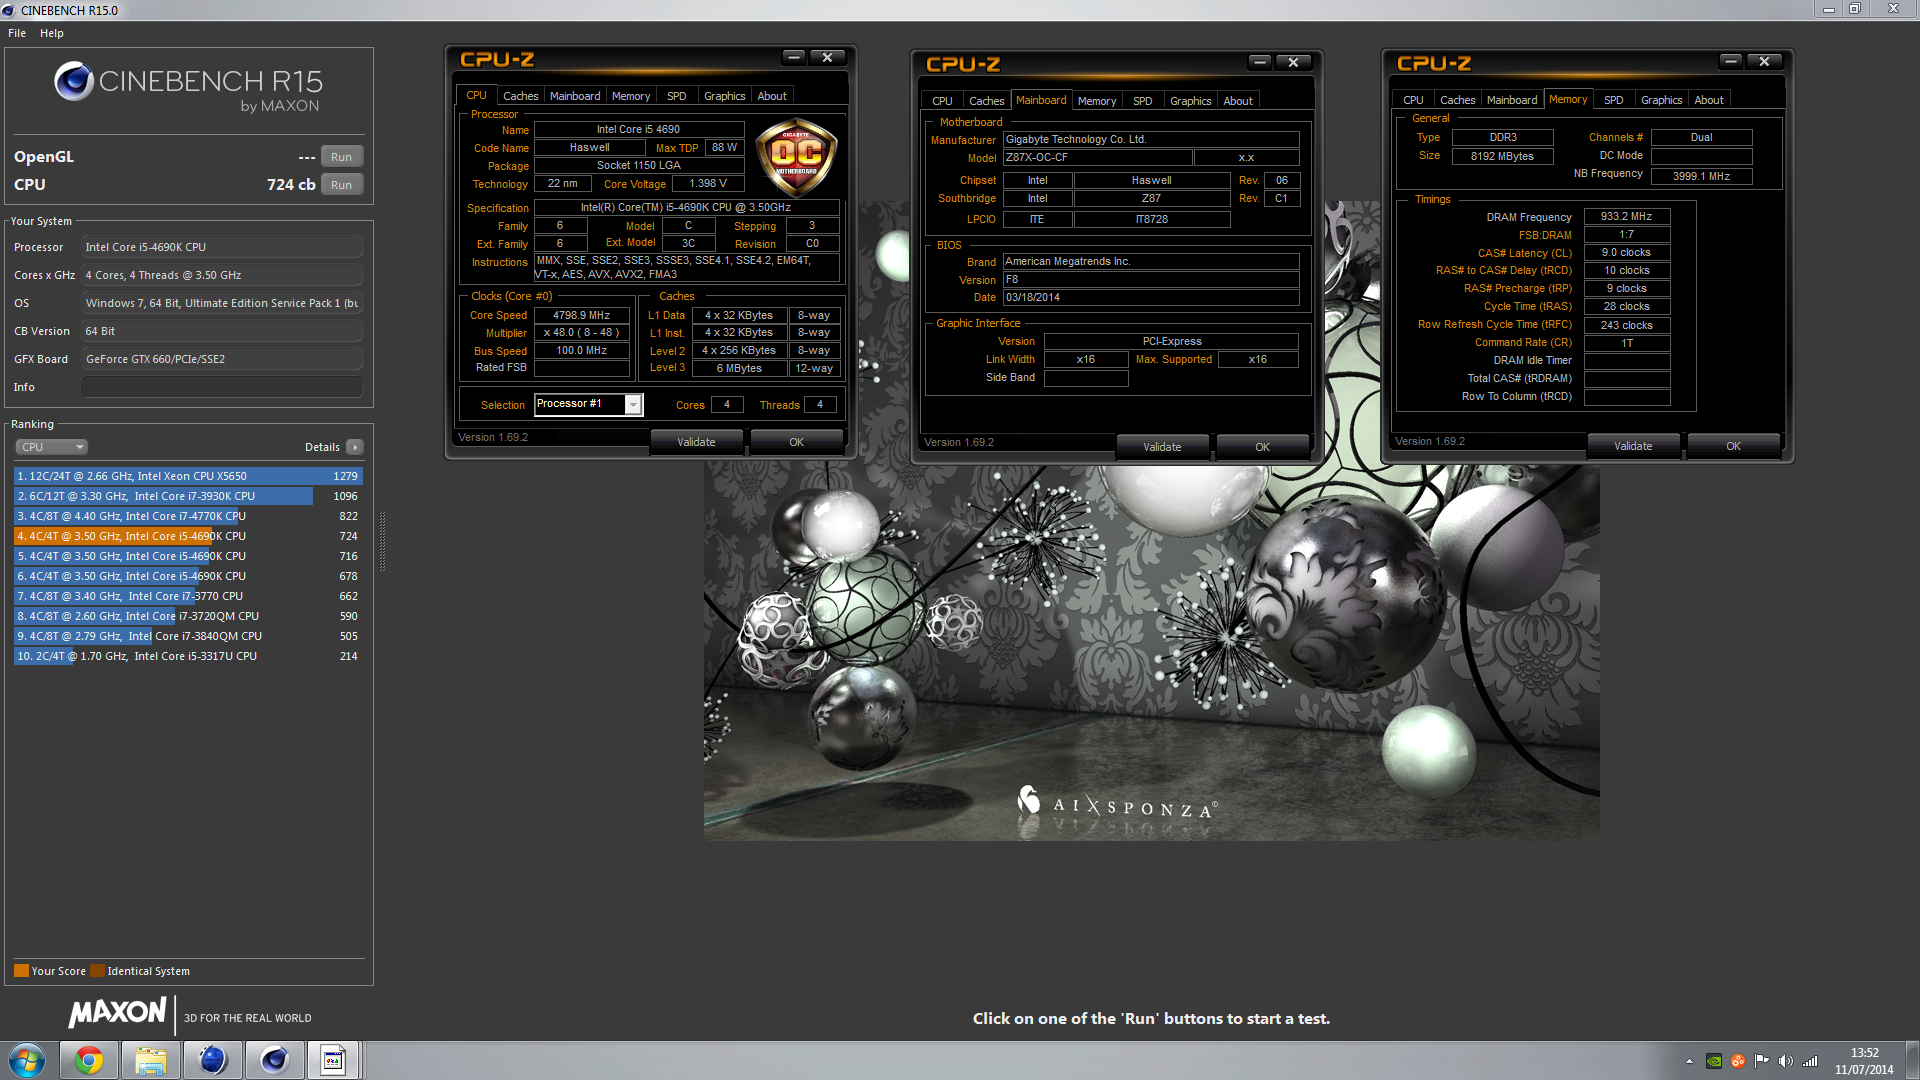 asis_92`s Cinebench - R15 score: 724 cb with a Core i5 4690K